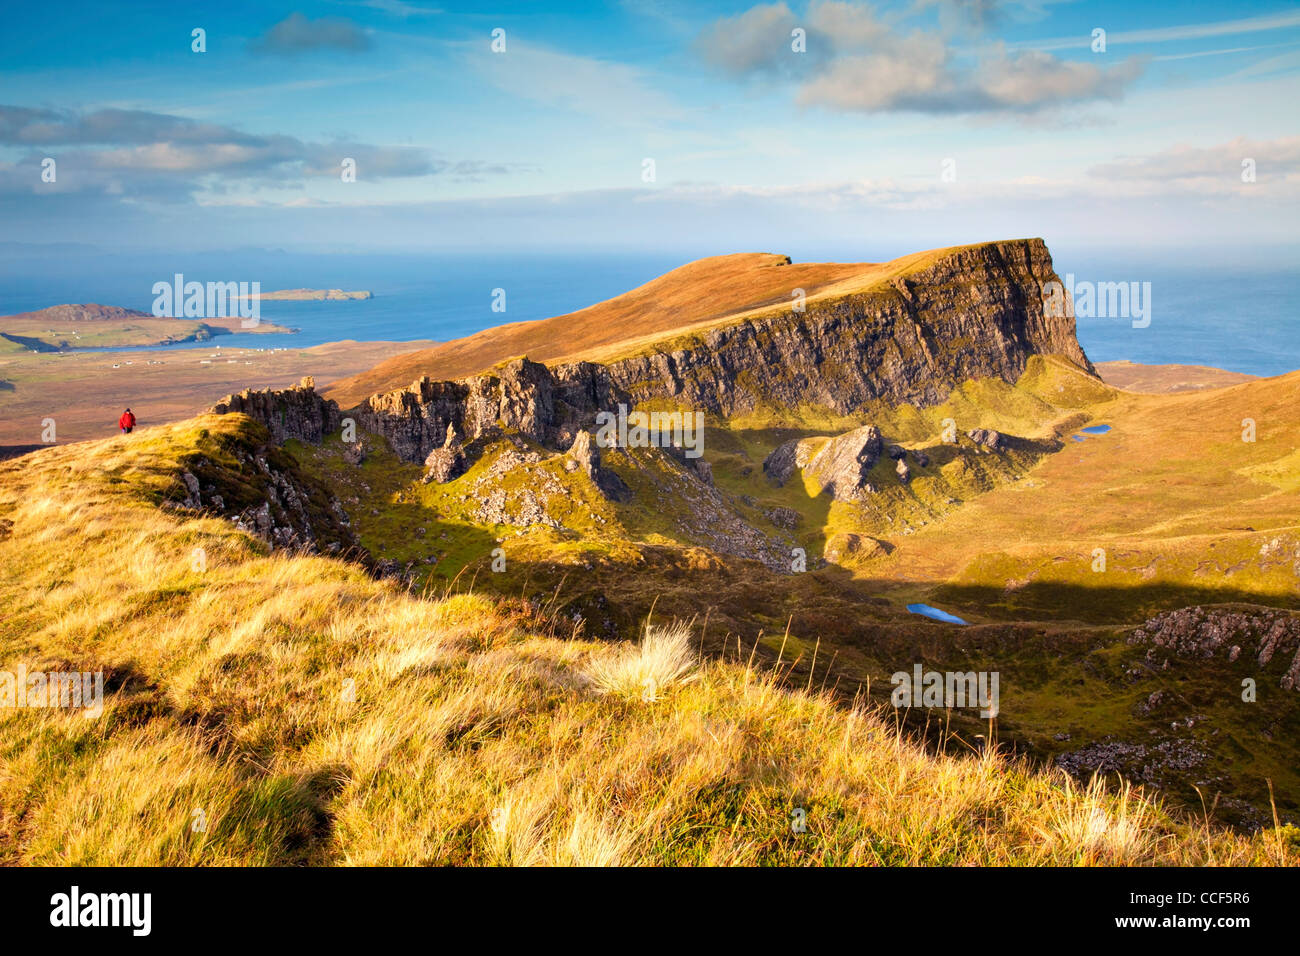 Fir Bhreugach on the Trotterish Ridge, just north of the Quiraing on the Isle of Skye. Bathed in late evening light. - Stock Image